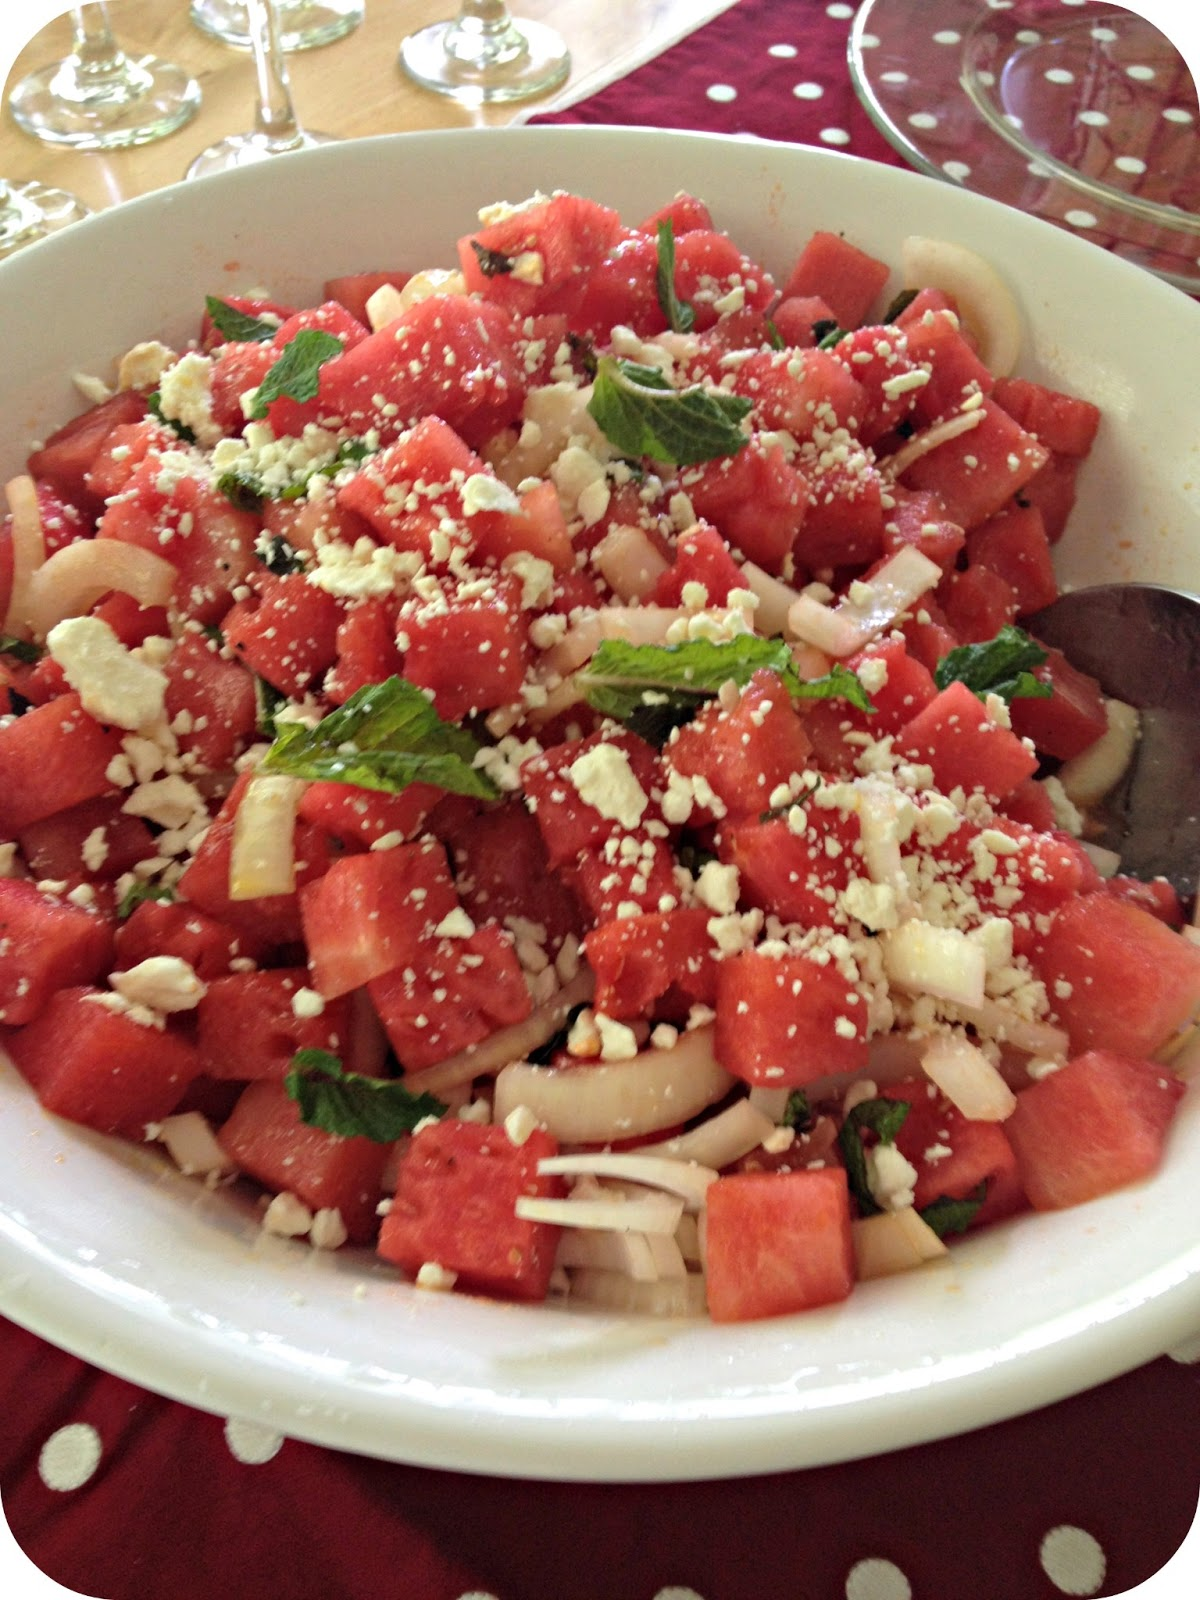 Everyday Thoughts: Watermelon and Mint Salad